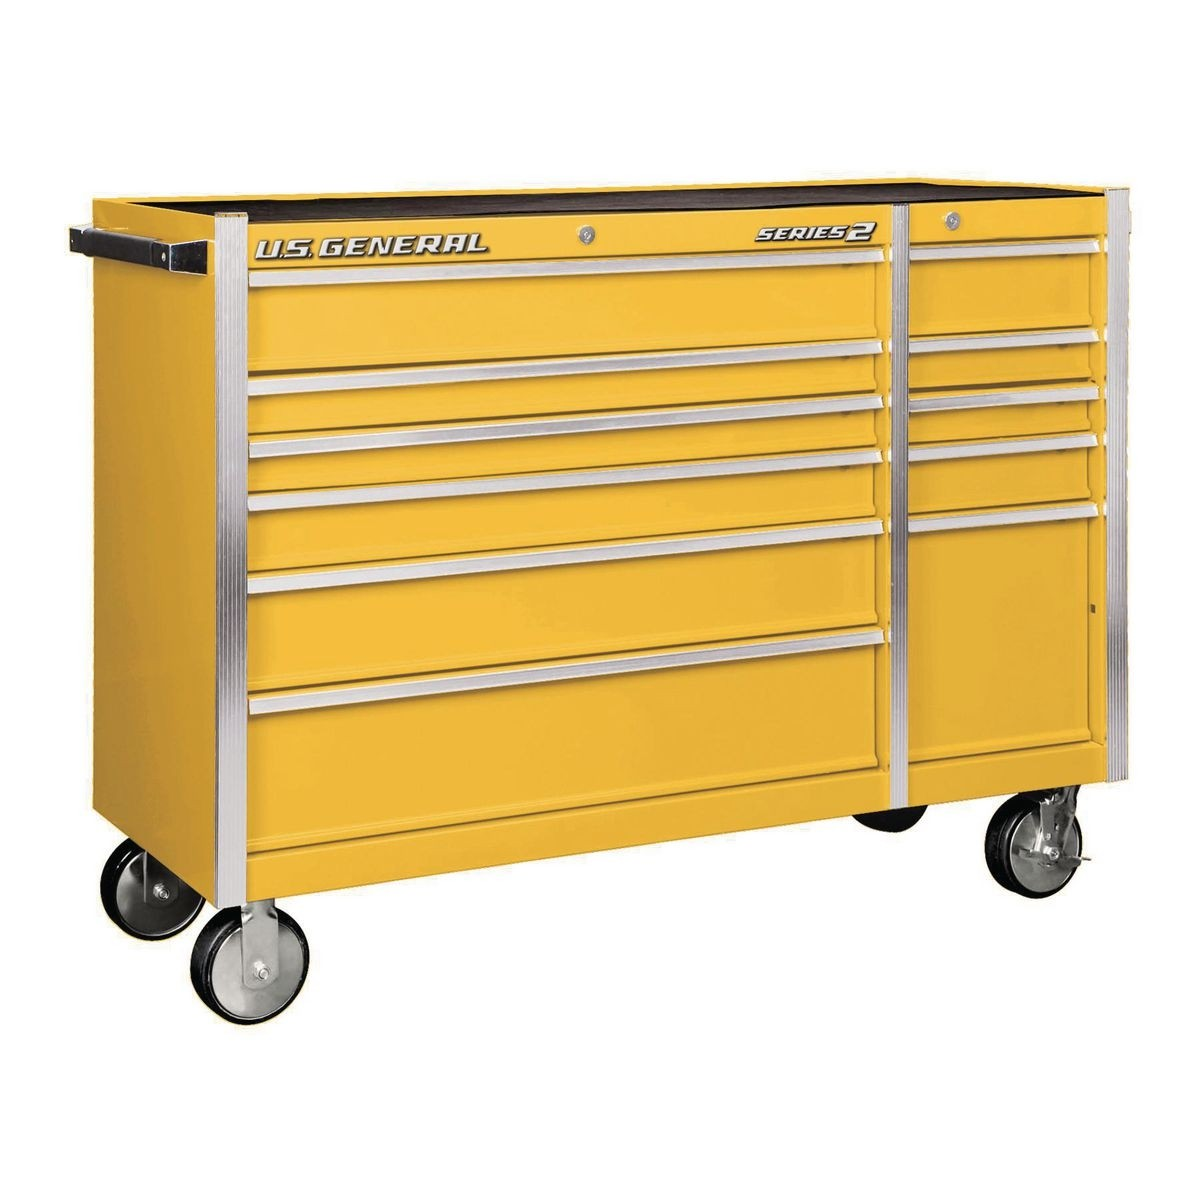 U.S. GENERAL 56 In. Double Bank Roller Cabinet – Yellow – Item 56112